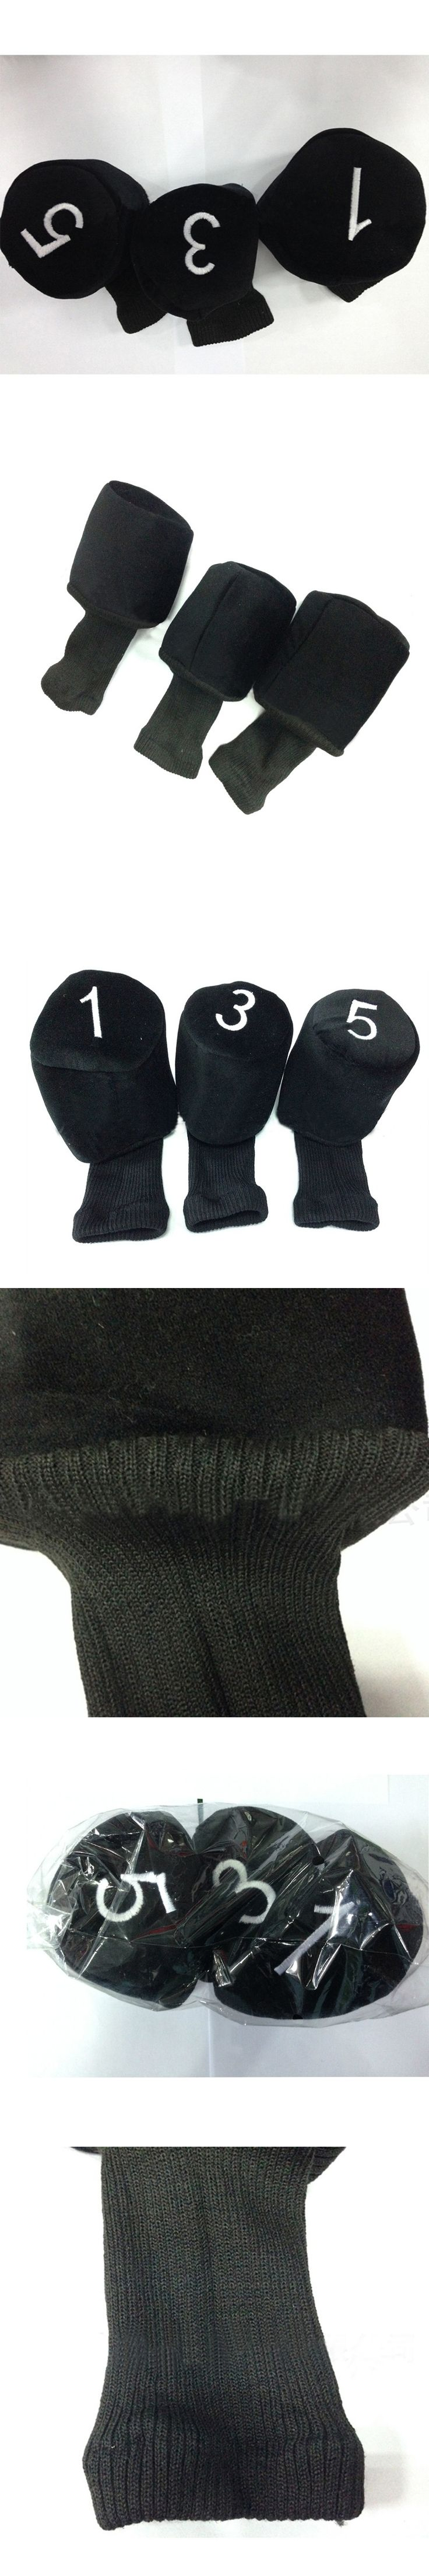 New Arrival 1 Set of 3 Long Neck Barrel Golf Club Head Covers Headcovers Protect Black Head Cover Protect Set Accessary